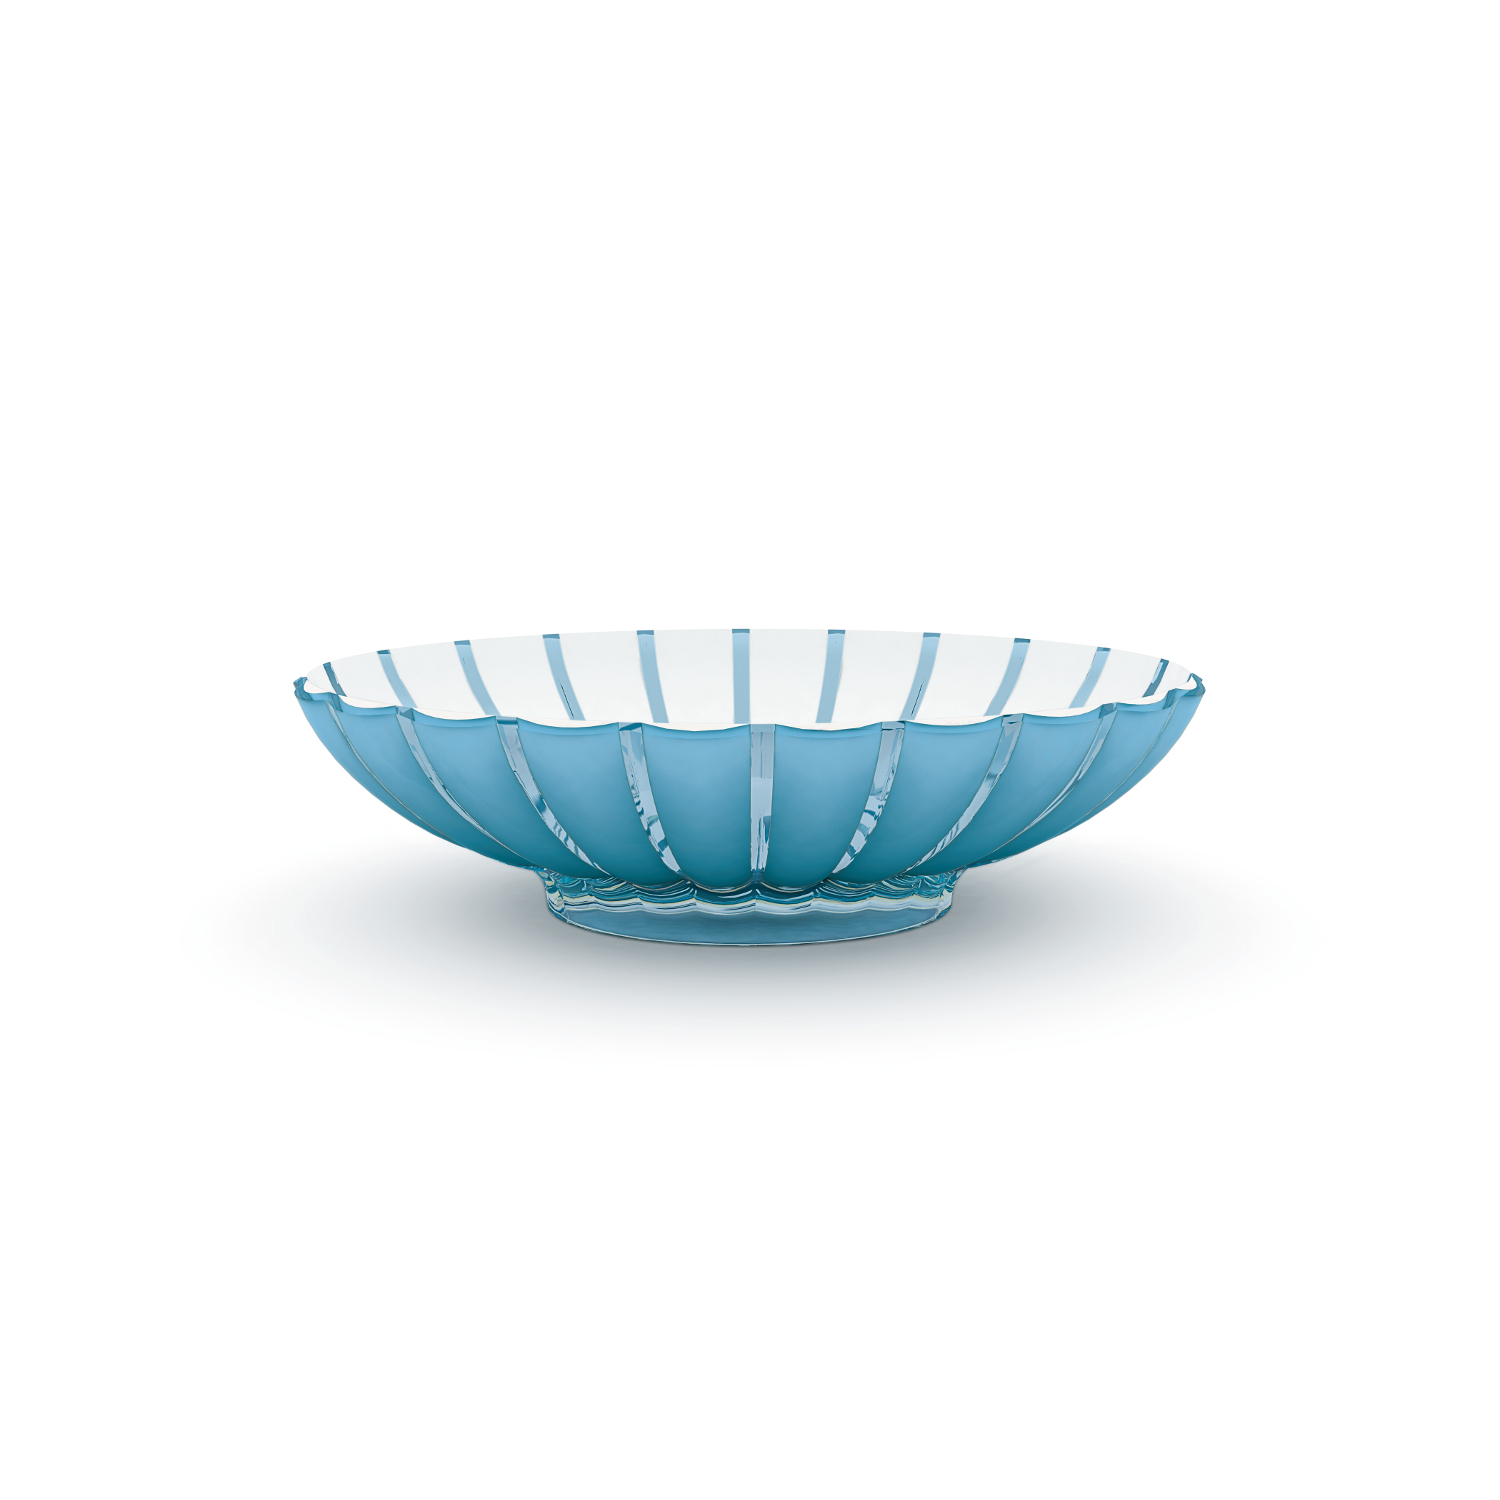 Guzzini Grace Blue Acrylic Oval Centerpiece